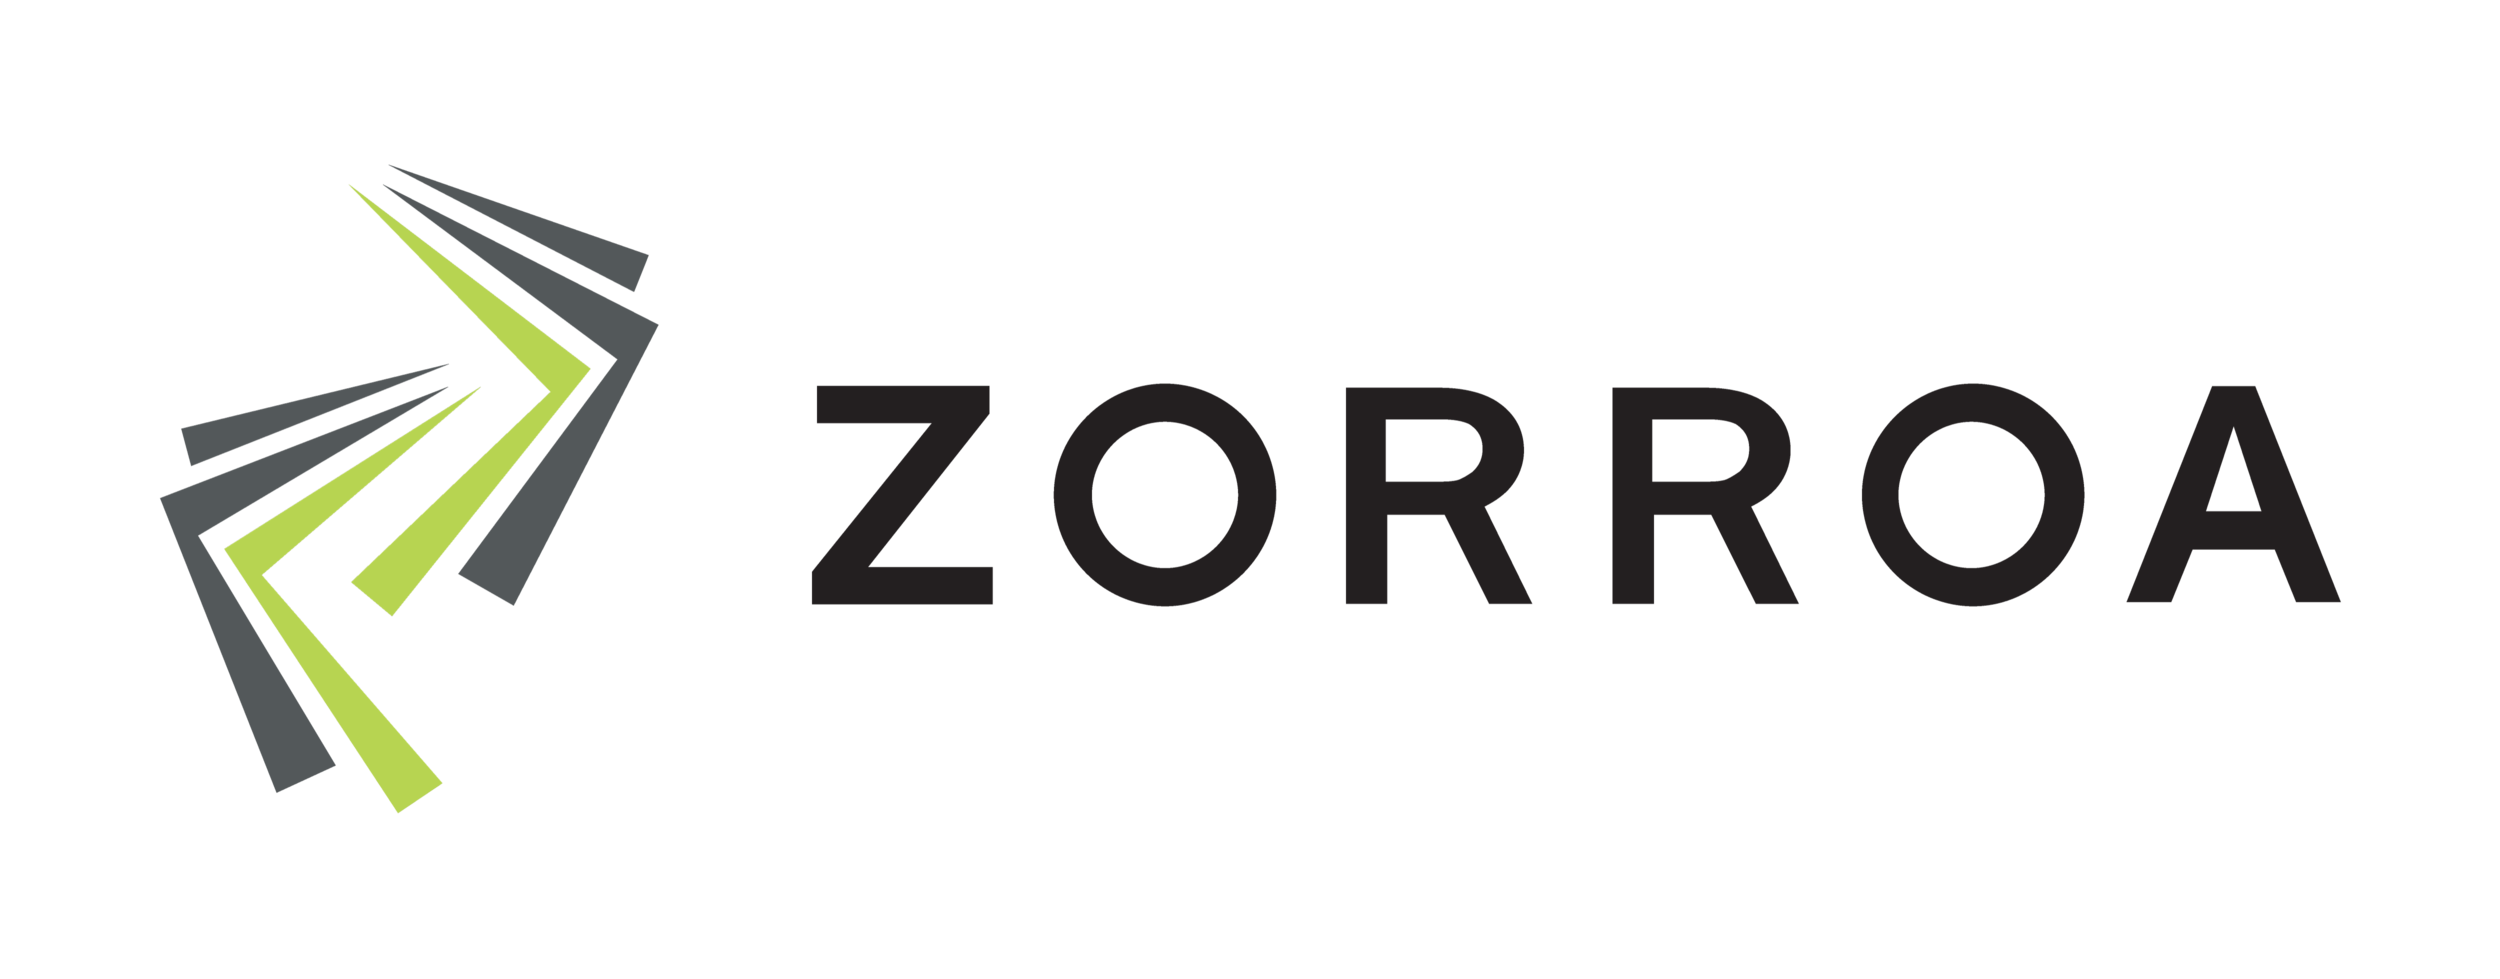 zorroa-logo-color-5000px.png